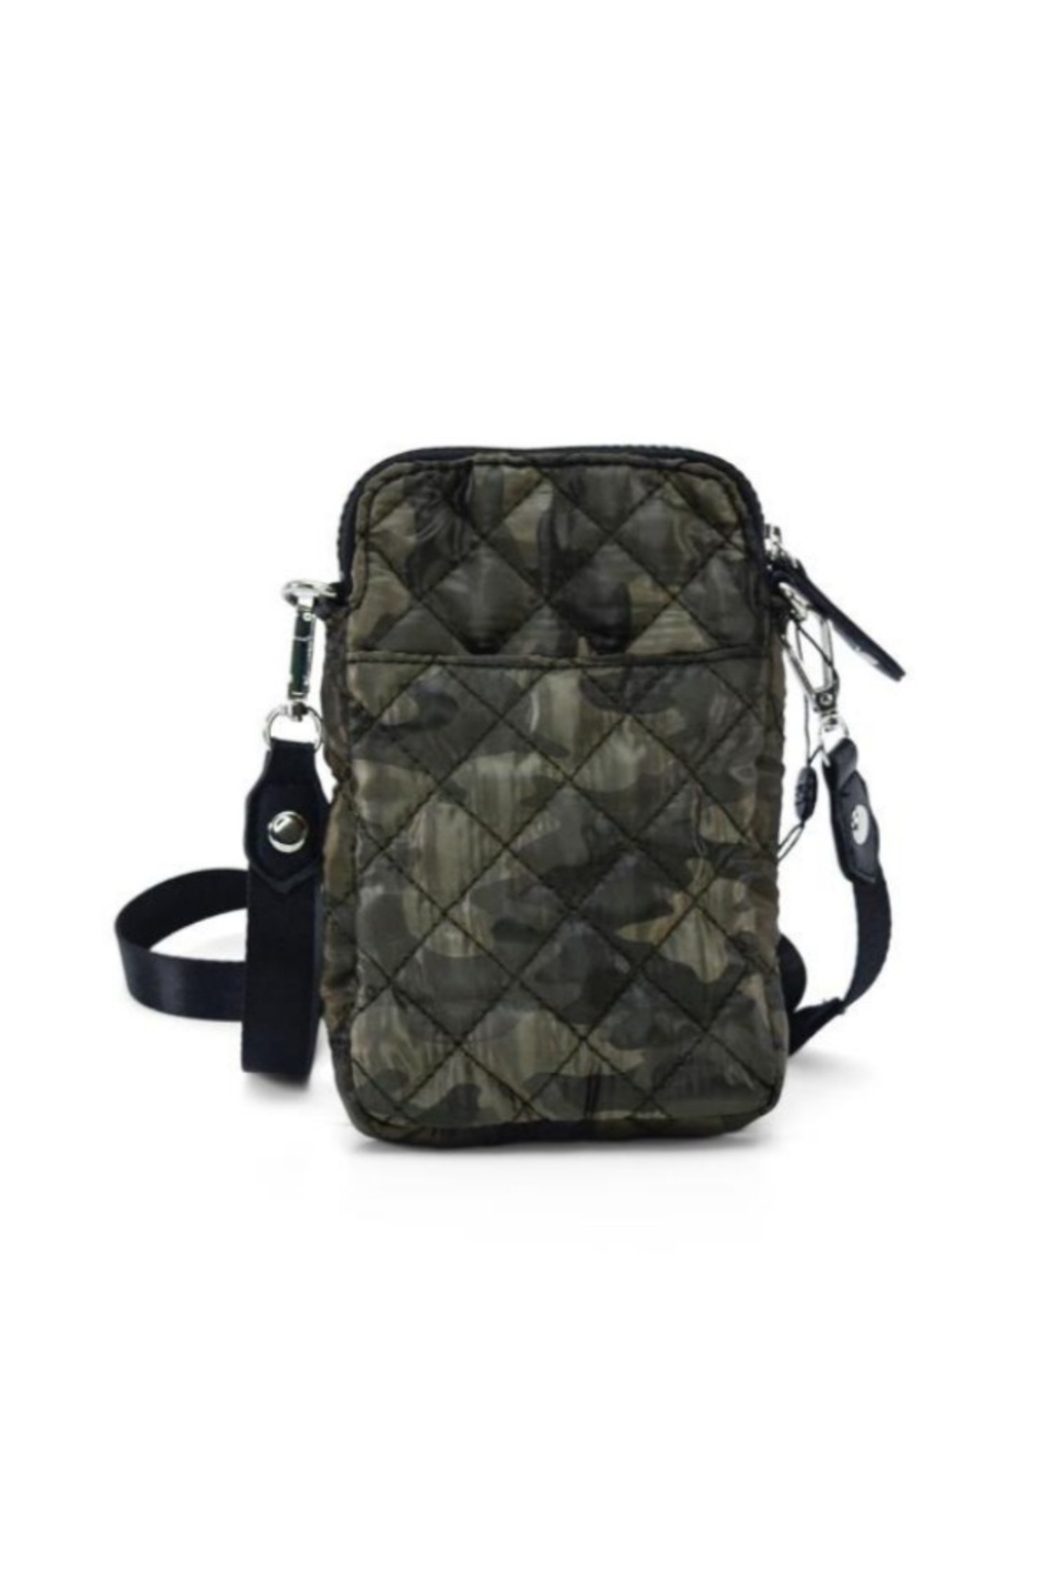 Allie & Chica Puffy Phone Holder in Camo - Main Image